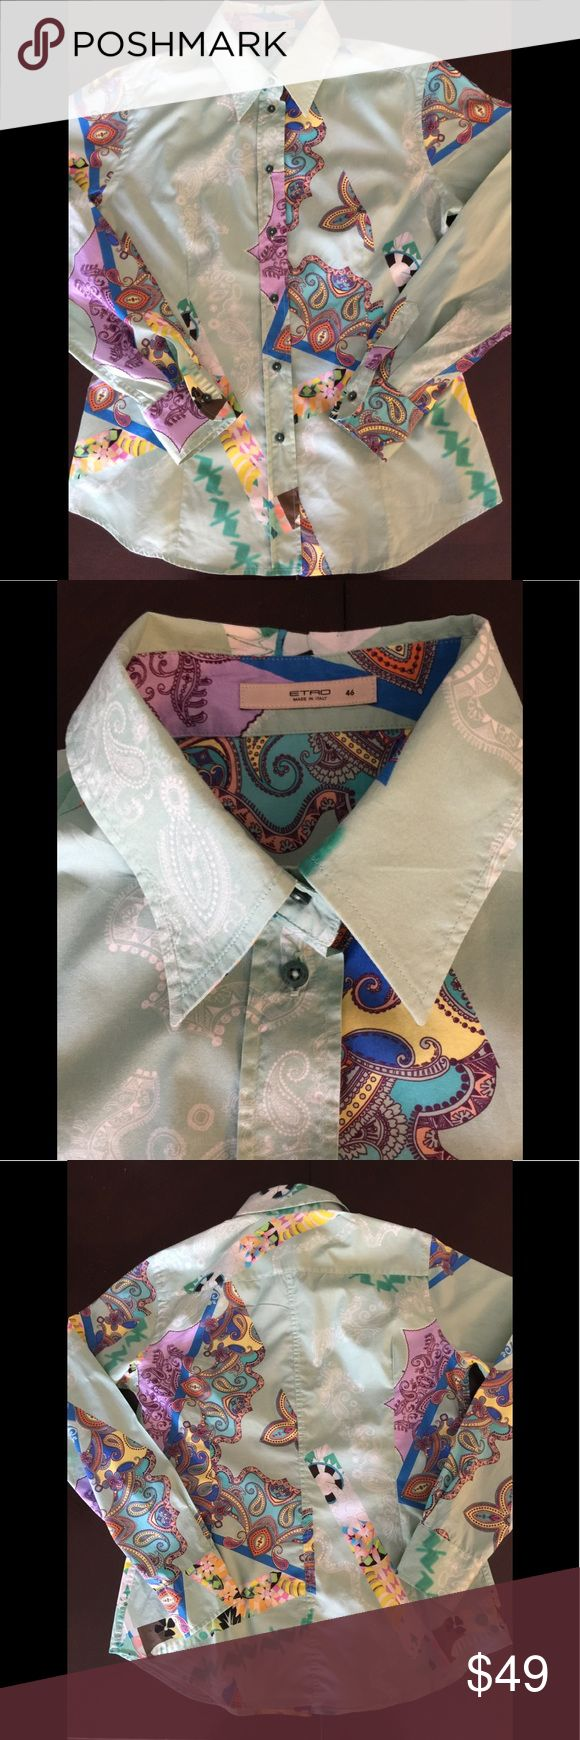 ETRO Italy lady's button down shirts size 46 Paisley button down shirts size 46 Like brand new  Very good condition Etro Tops Button Down Shirts